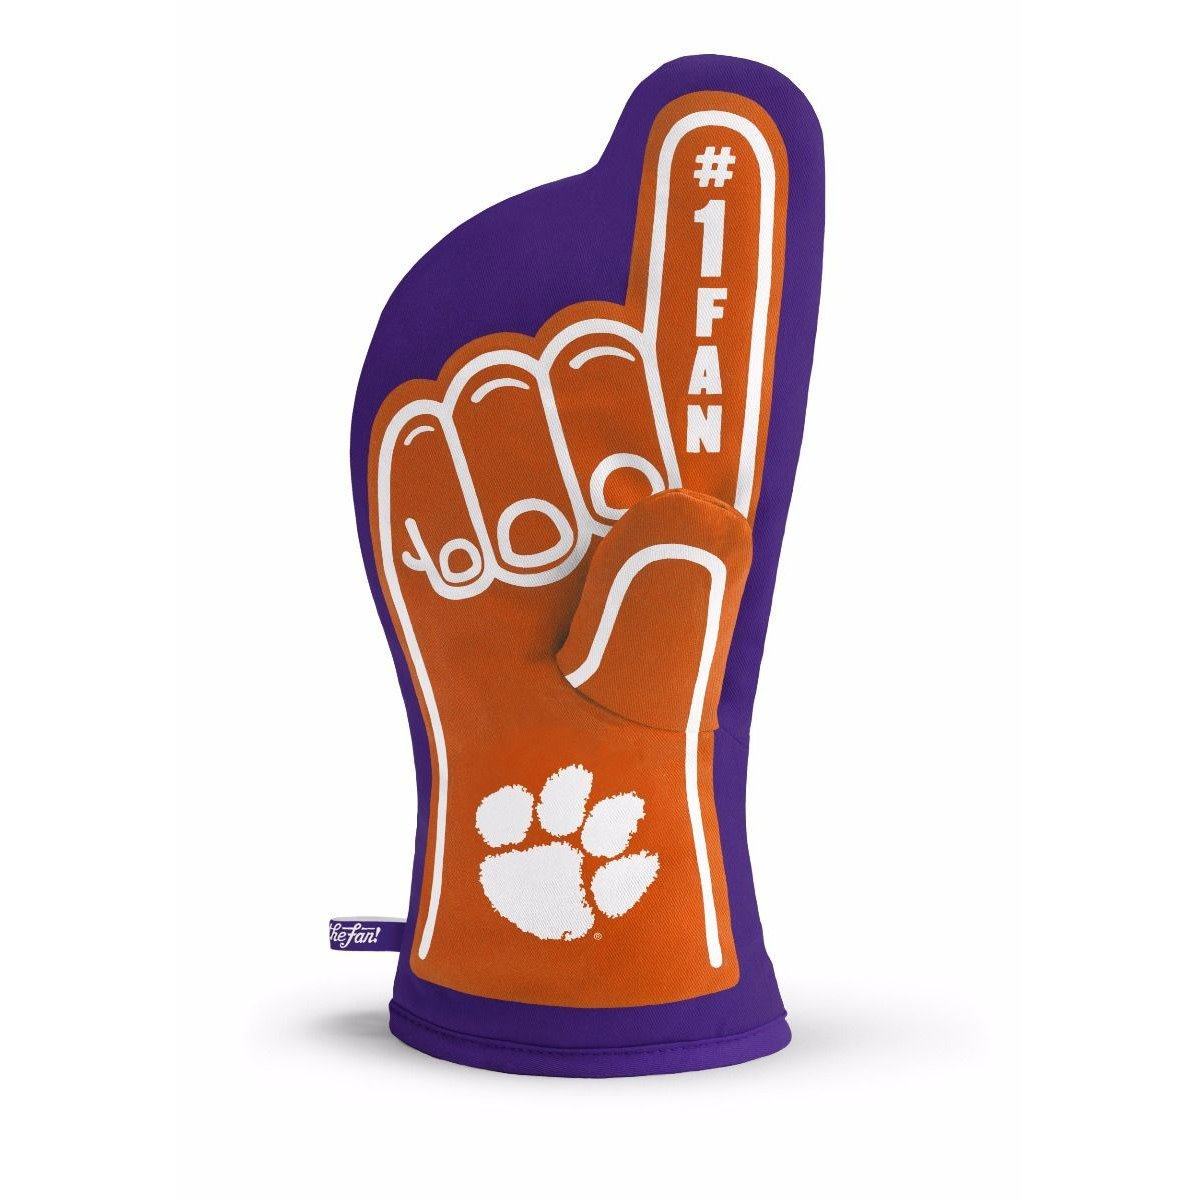 Clemson Tigers #1 Fan Oven Mit - Mr. Knickerbocker